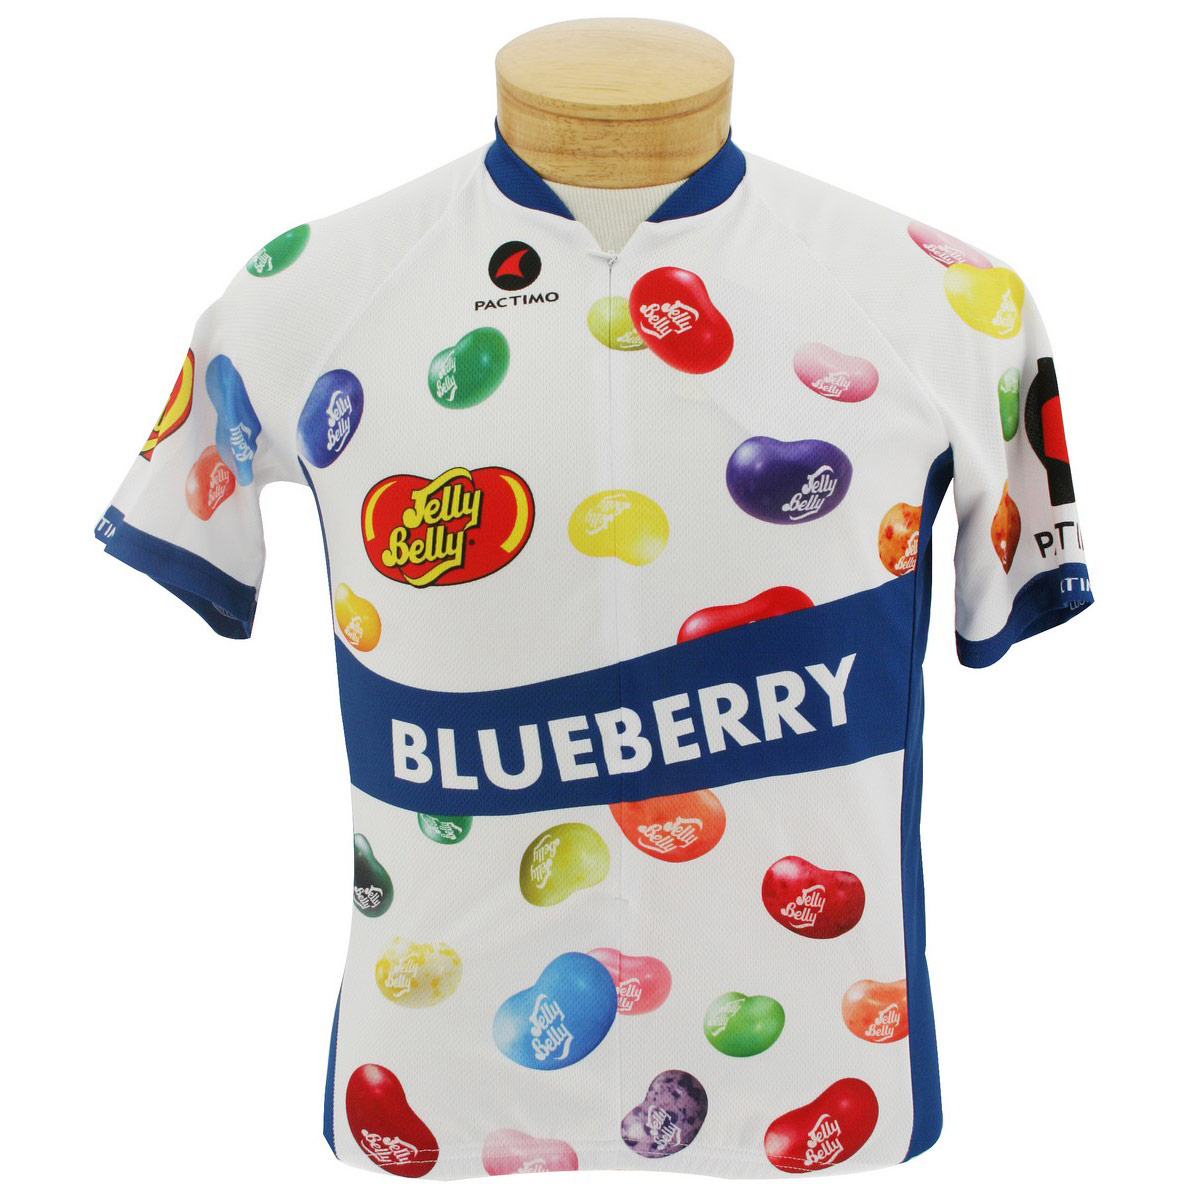 Jelly Belly Blueberry Cycling Jersey - Adult - X-Small